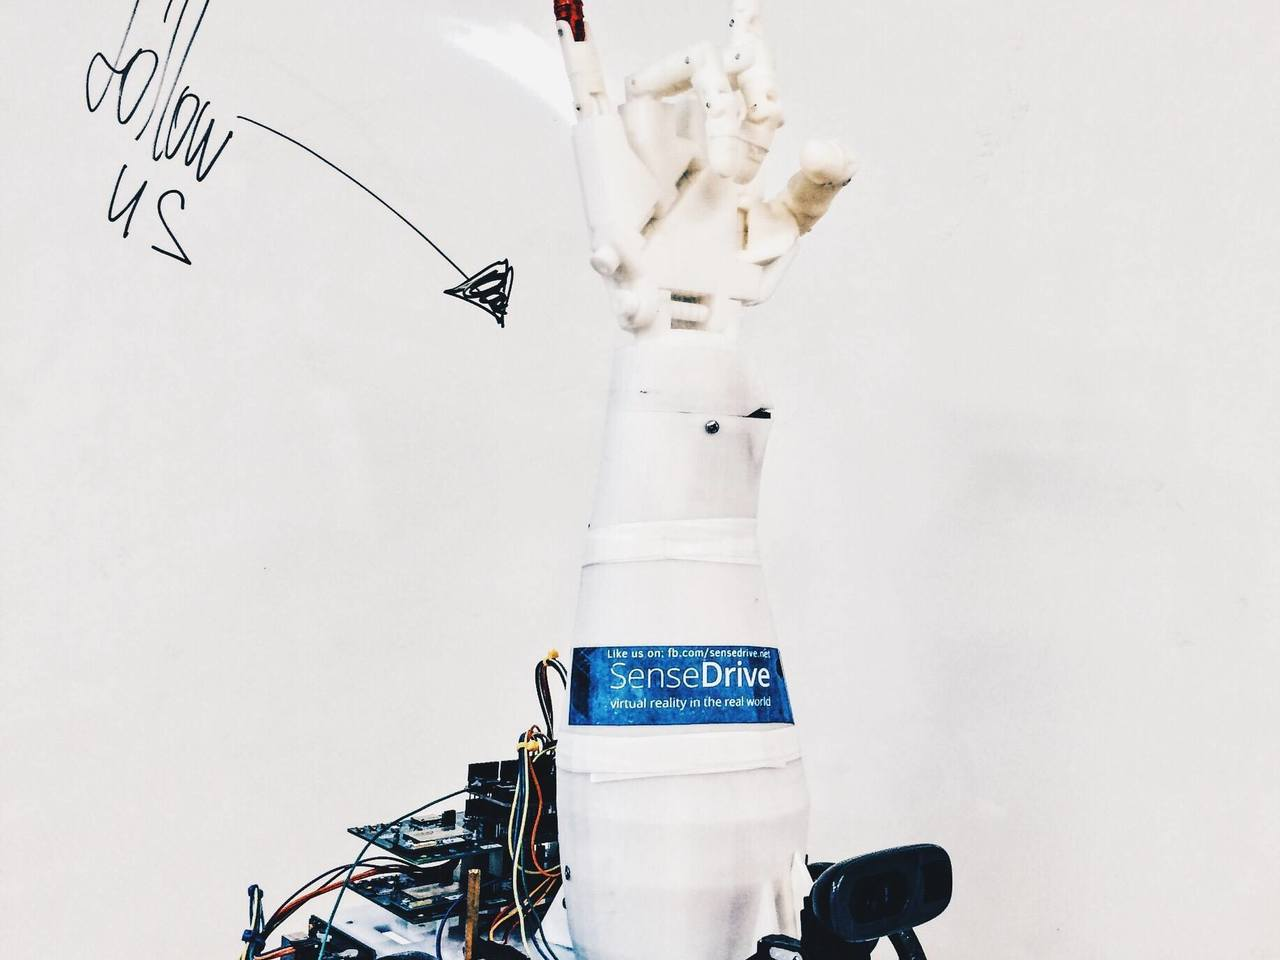 Robot-avatar SenseDrive - symbiosis of human, mechatronics and